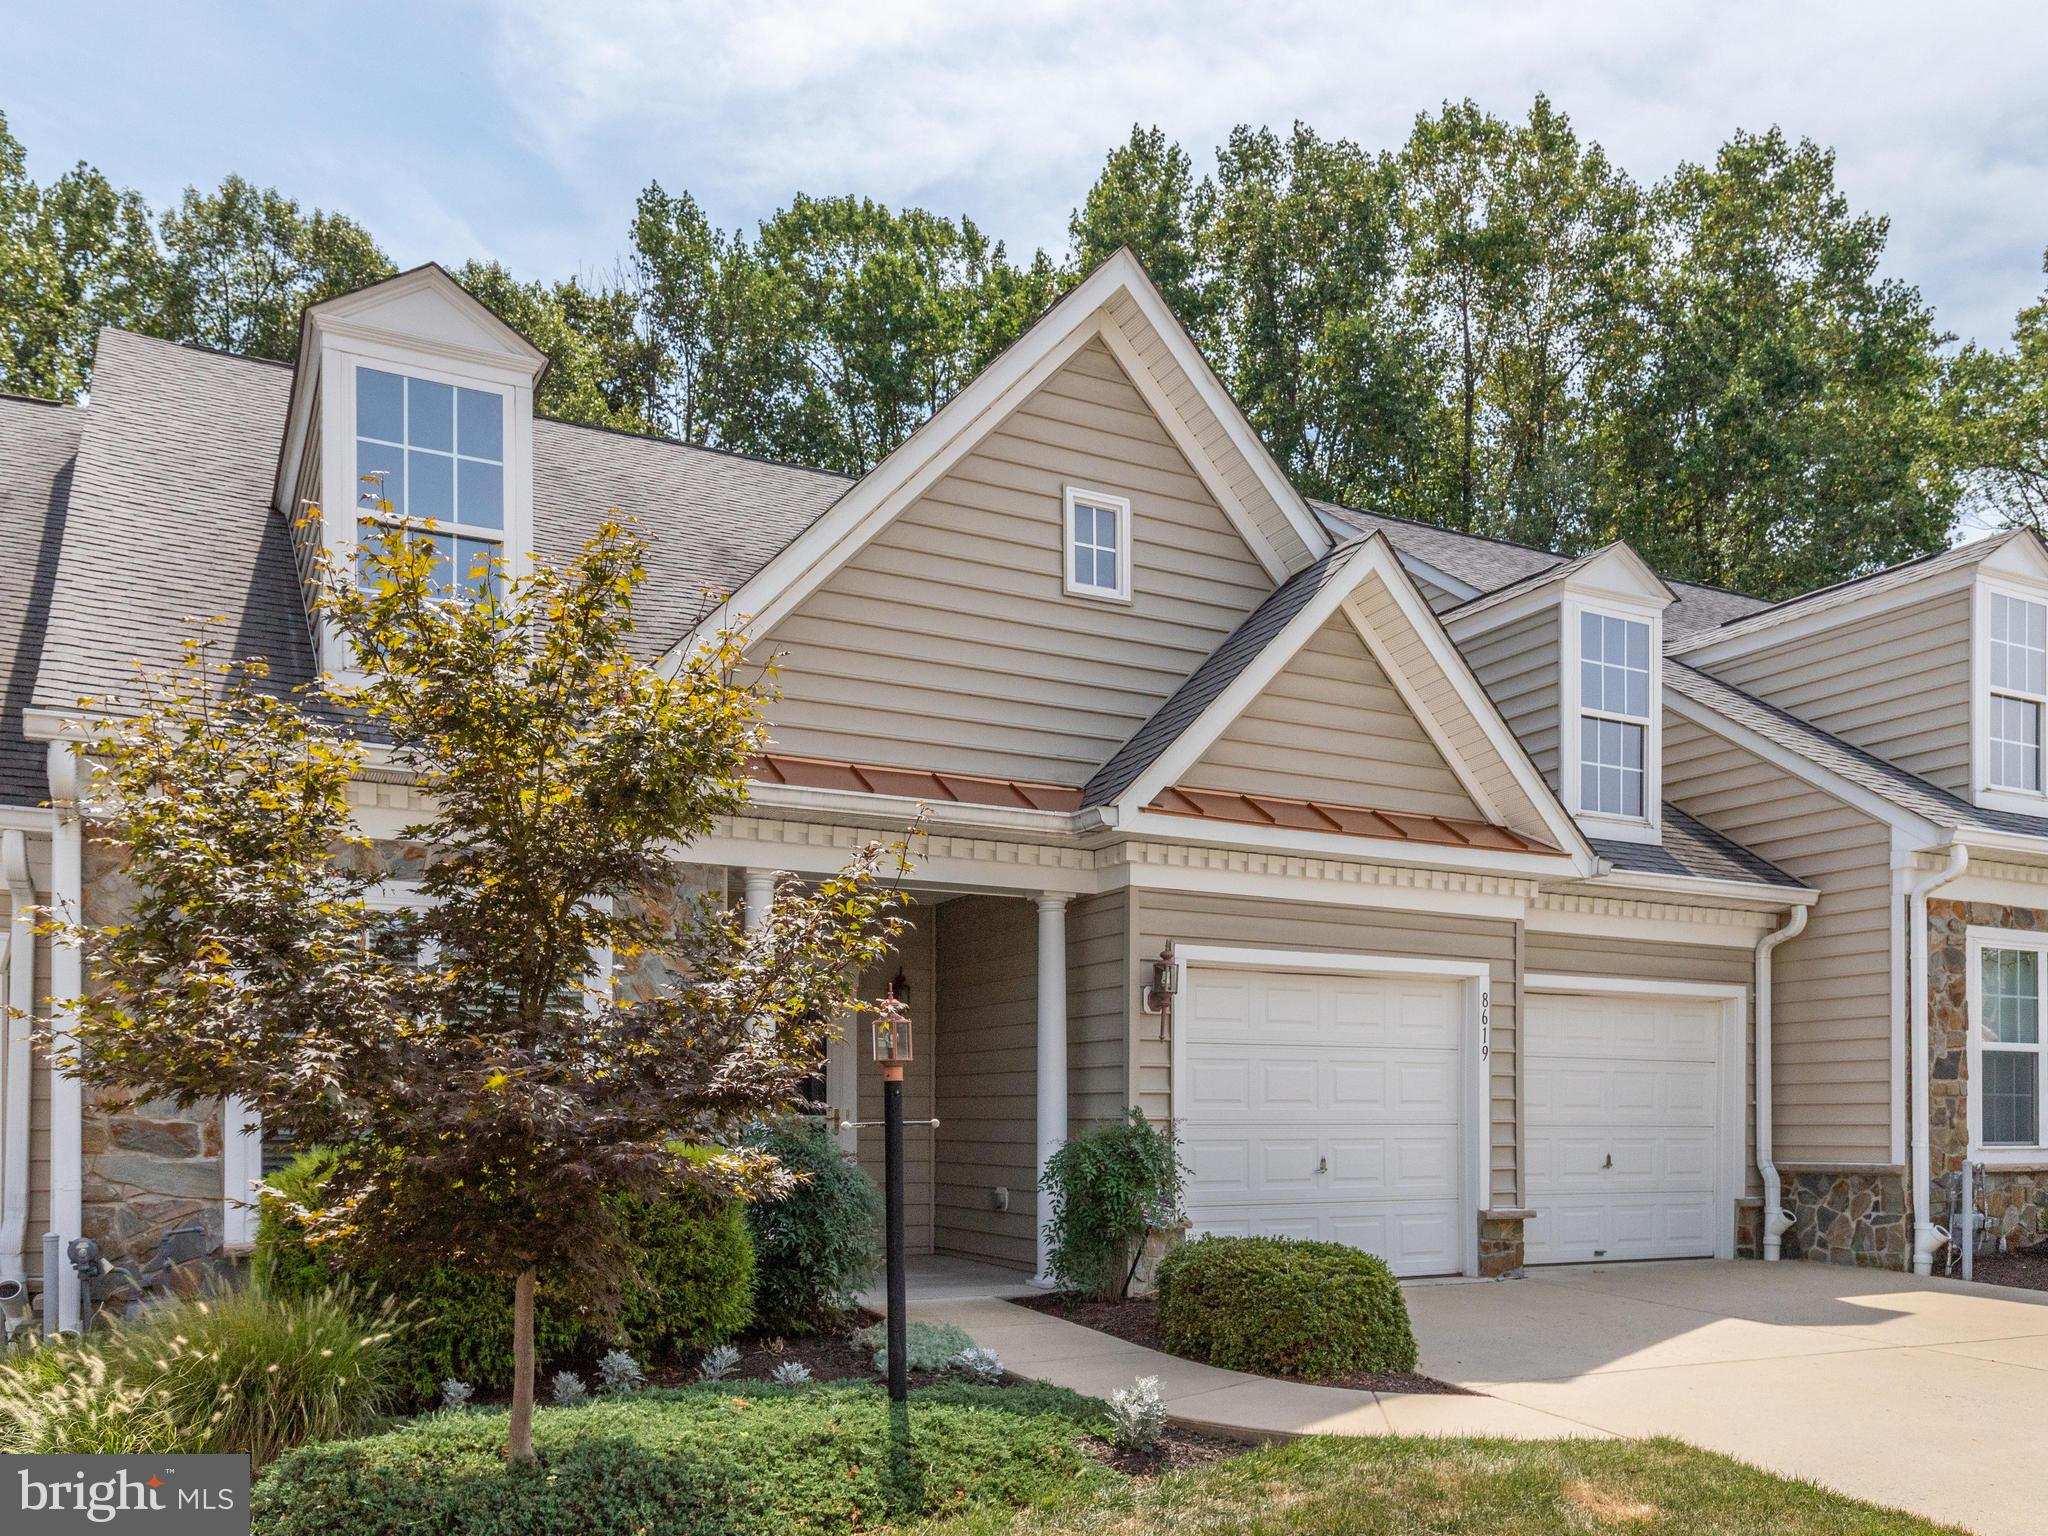 8619 VAST ROSE DRIVE 8, COLUMBIA, MD 21045